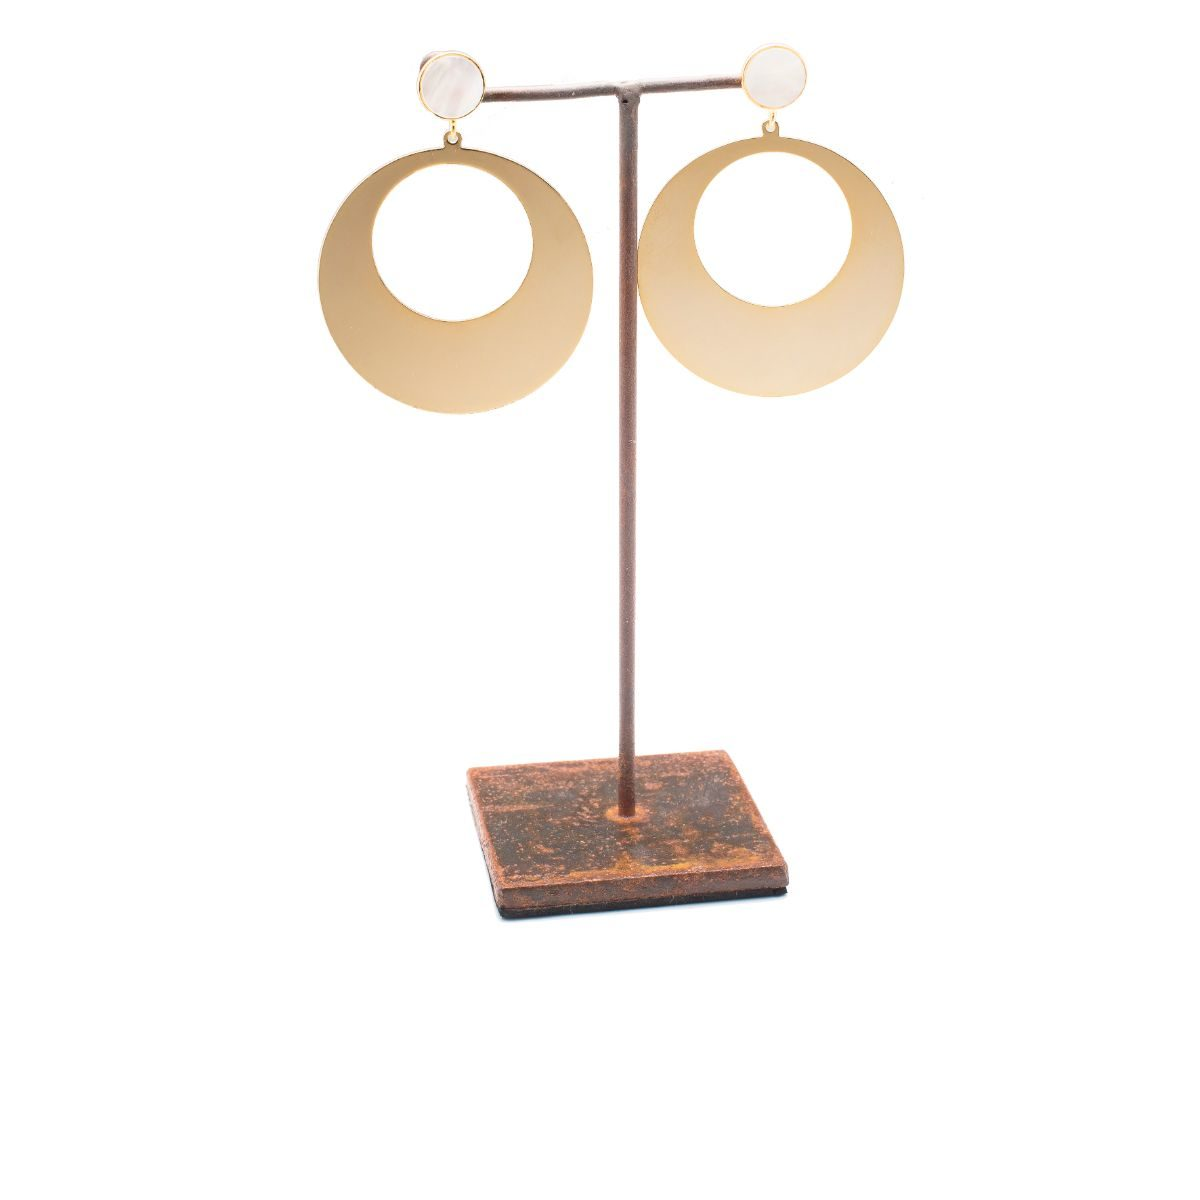 Erinias Earring with a circular piece of steel and gold plated. Mother-of-pearl piece in the snap closure.